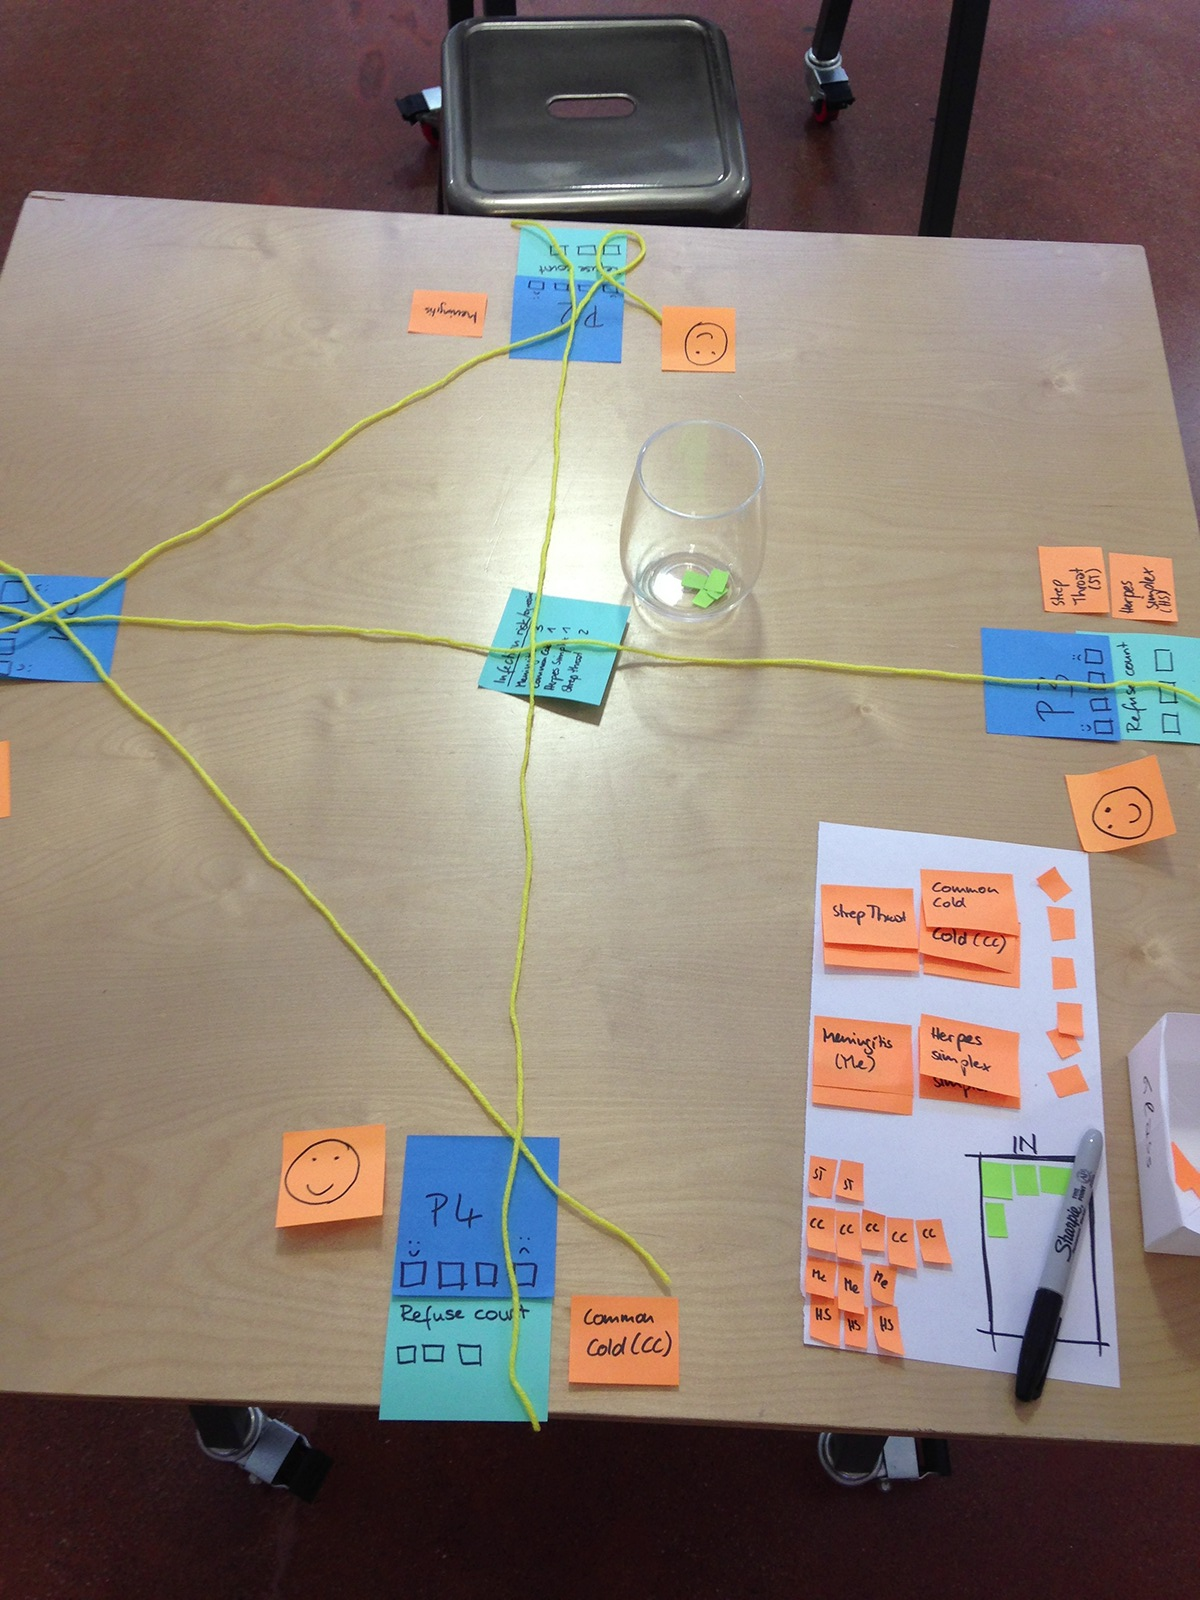 Service design,service,game,Prototyping,paper prototype,Touchtable,game concept,concept